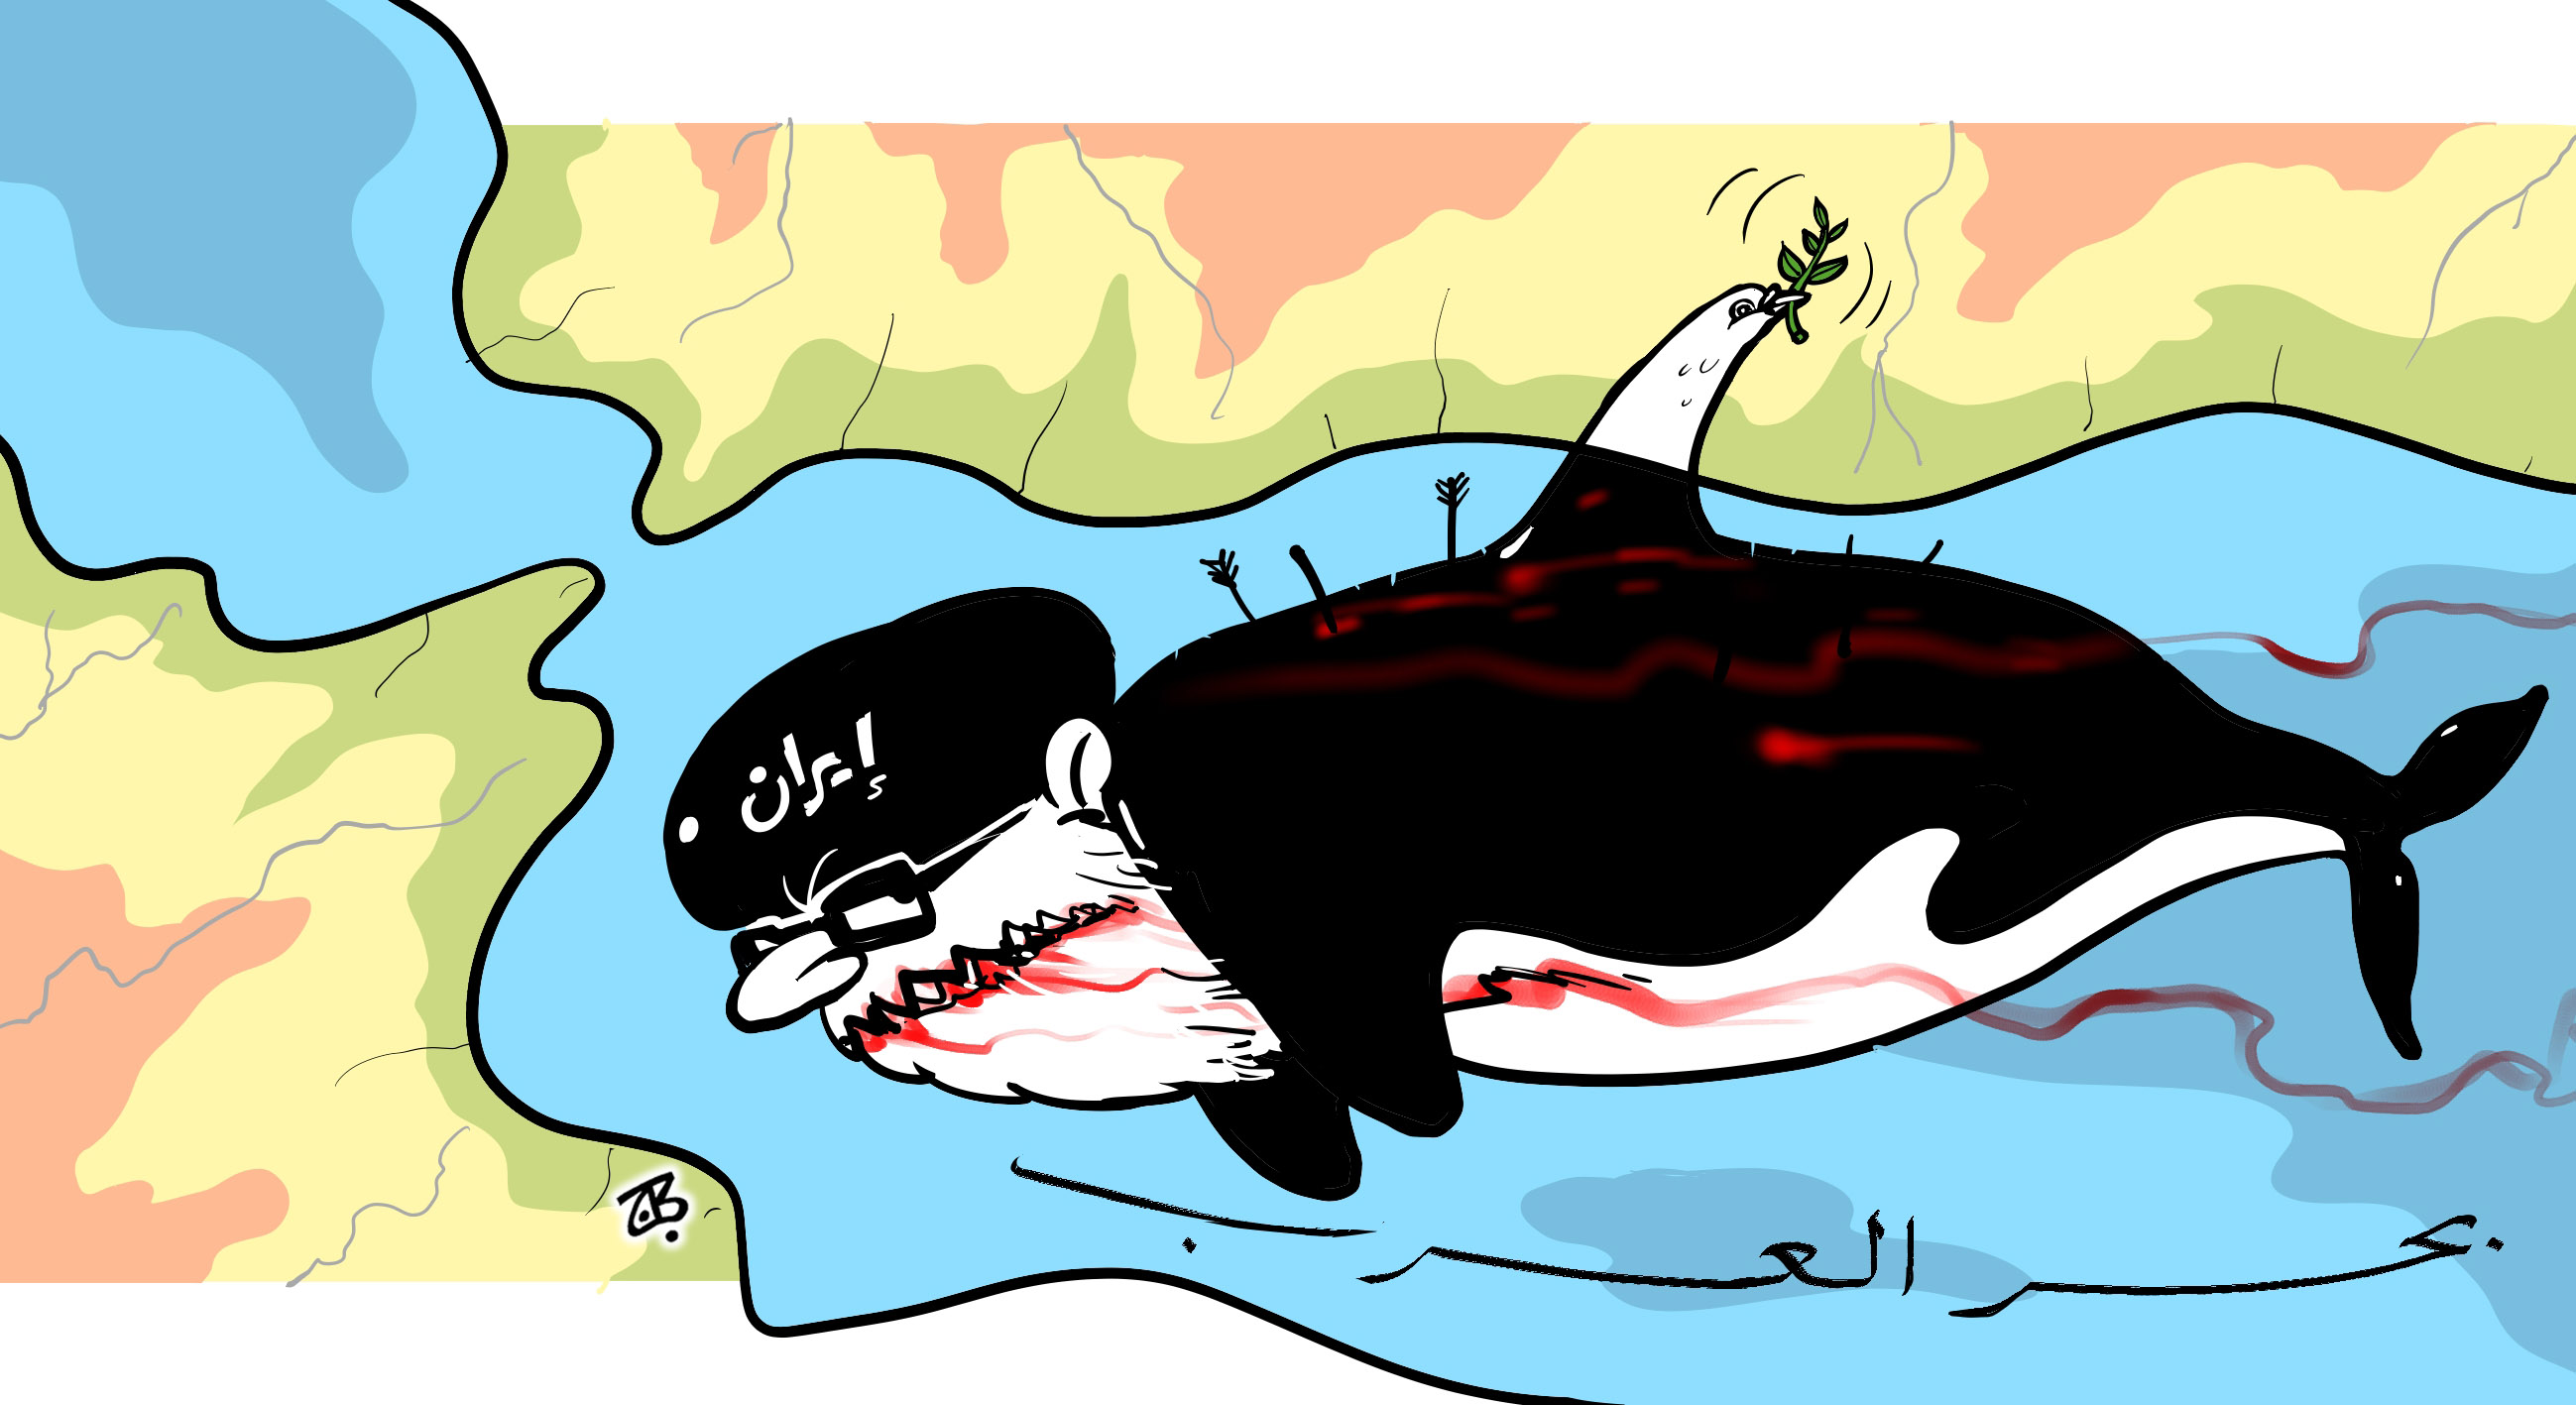 killer whale iran in Arab sea yemen war ksa 7azm storm peace dove 15-04-19